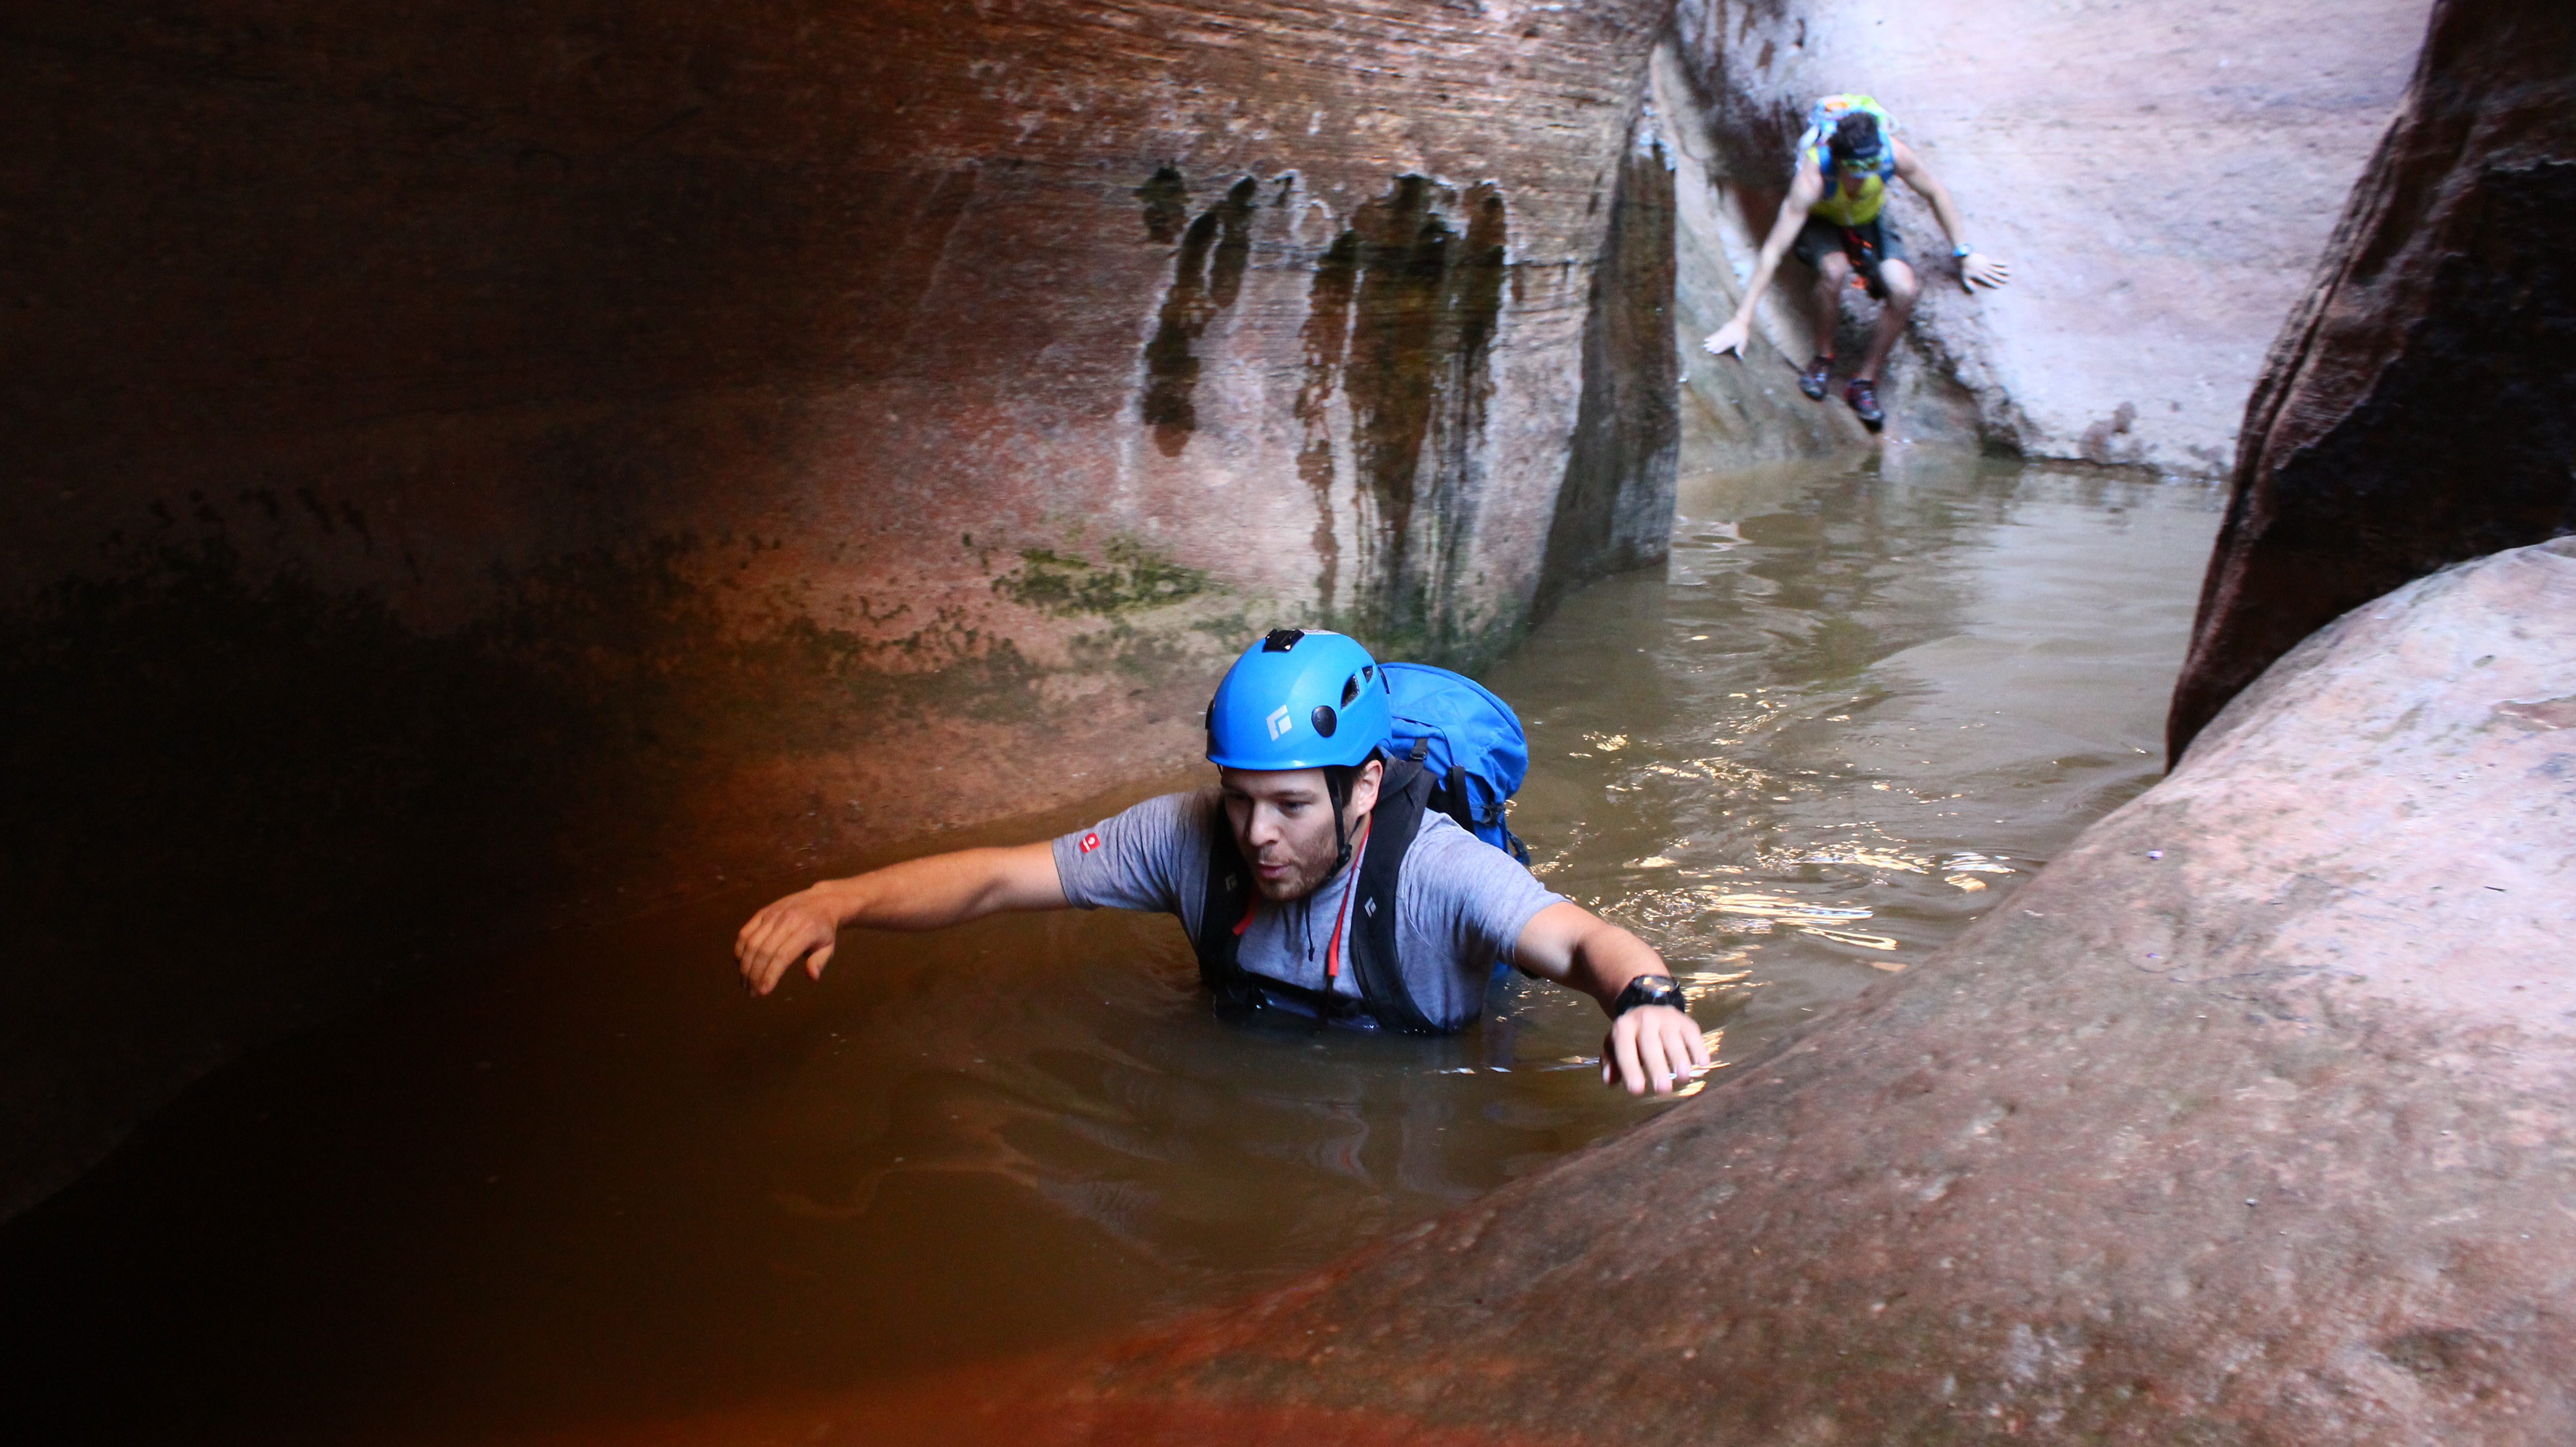 Kevin Arnone wades through chilly water, one of many such pools encountered in the descent of Yankee Doodle Canyon, Leeds, Utah, May 19, 2016 | Photo by Don Gilman, St. George News